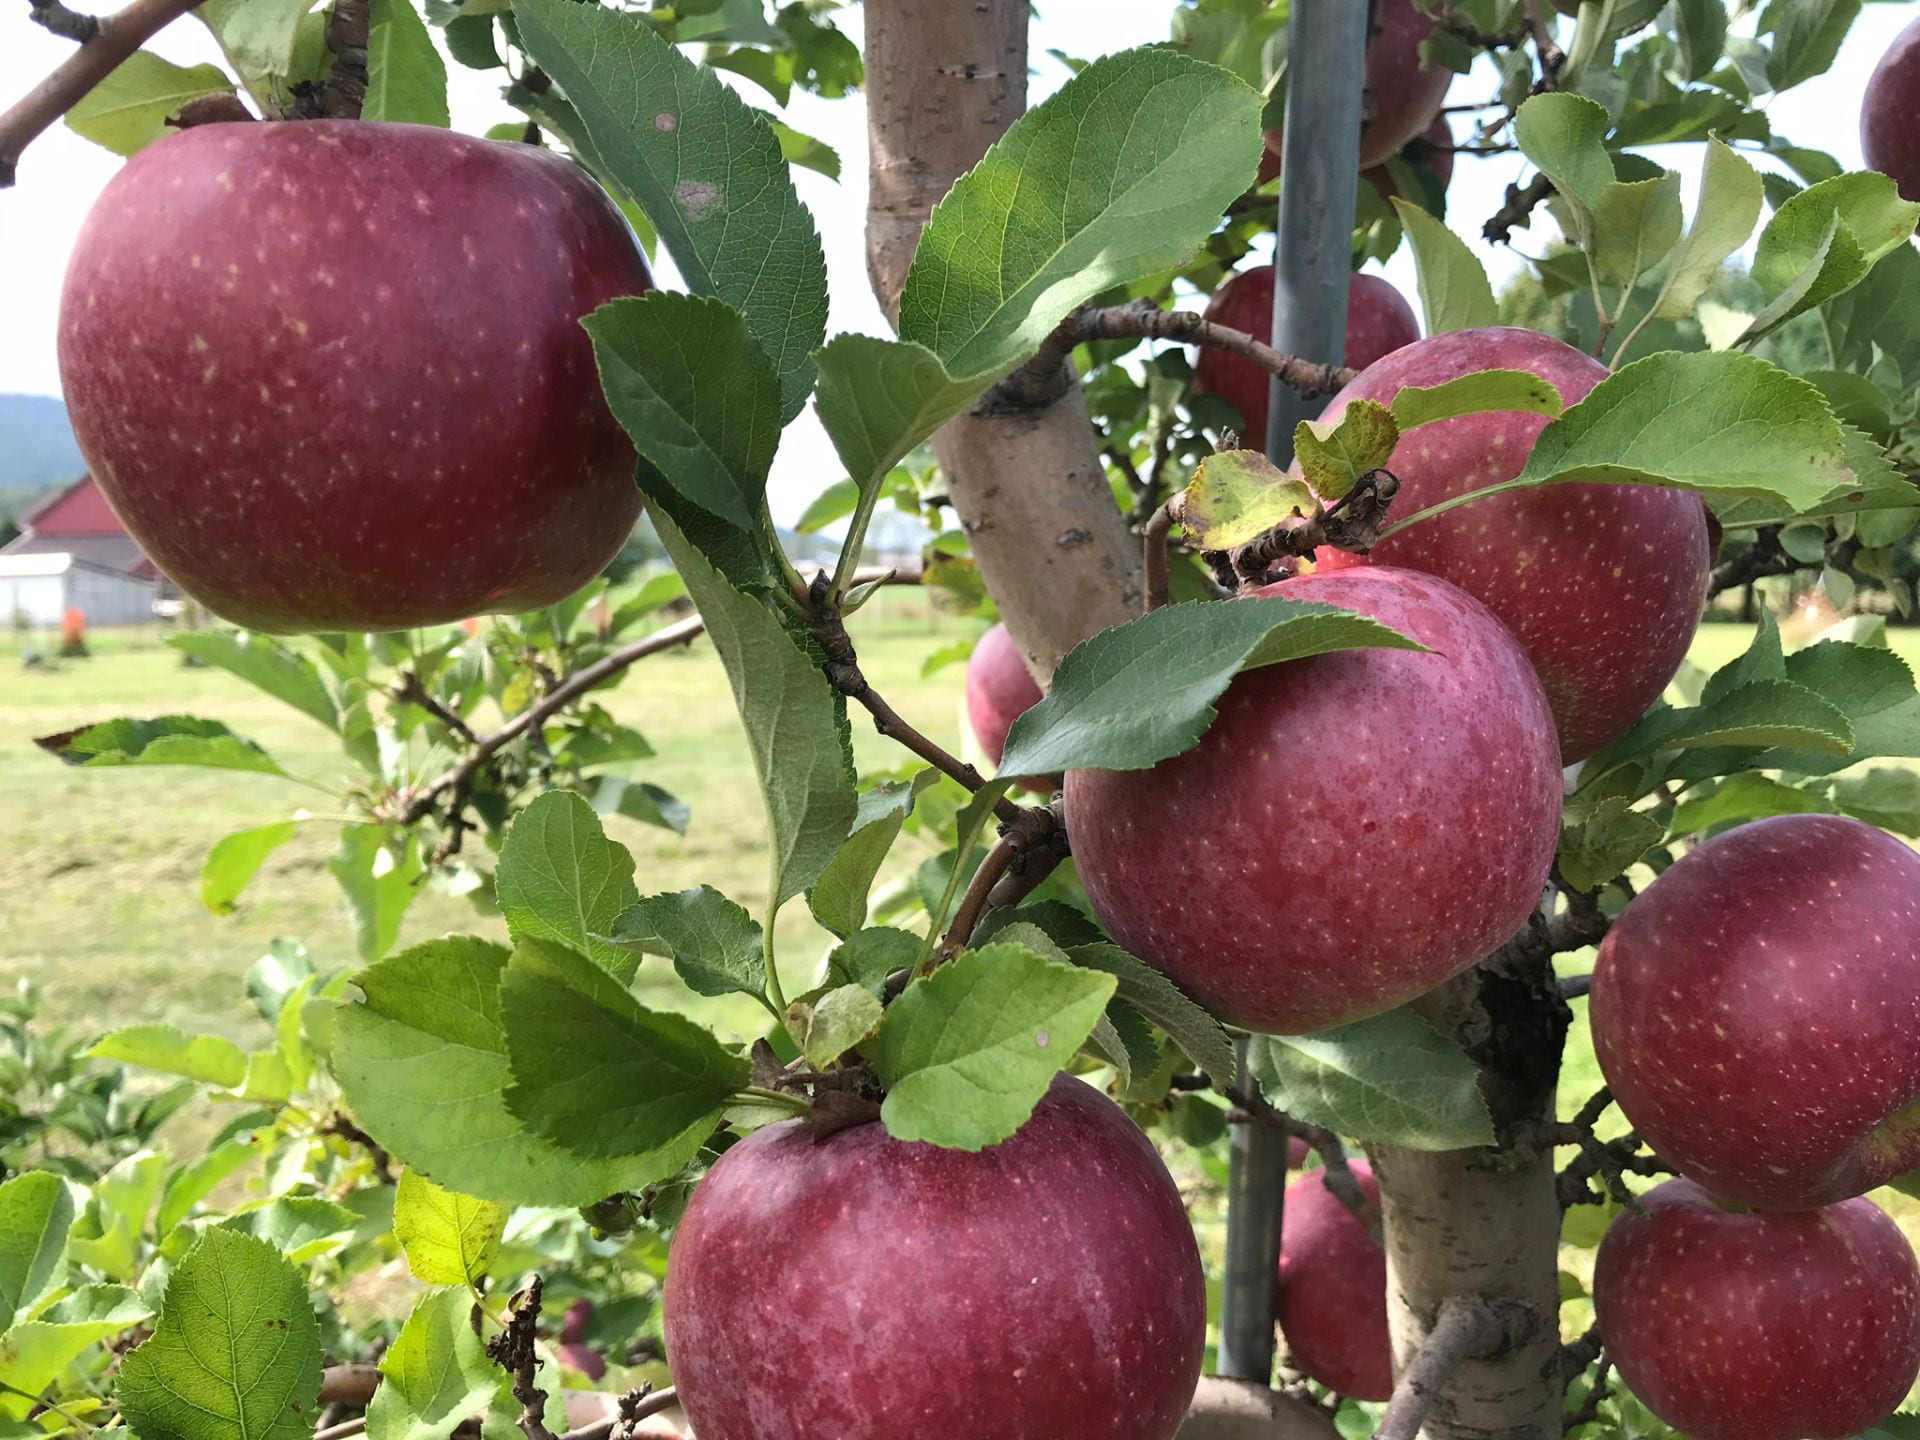 apples on tree Photo (CC BY 2.0) by Rita Graef